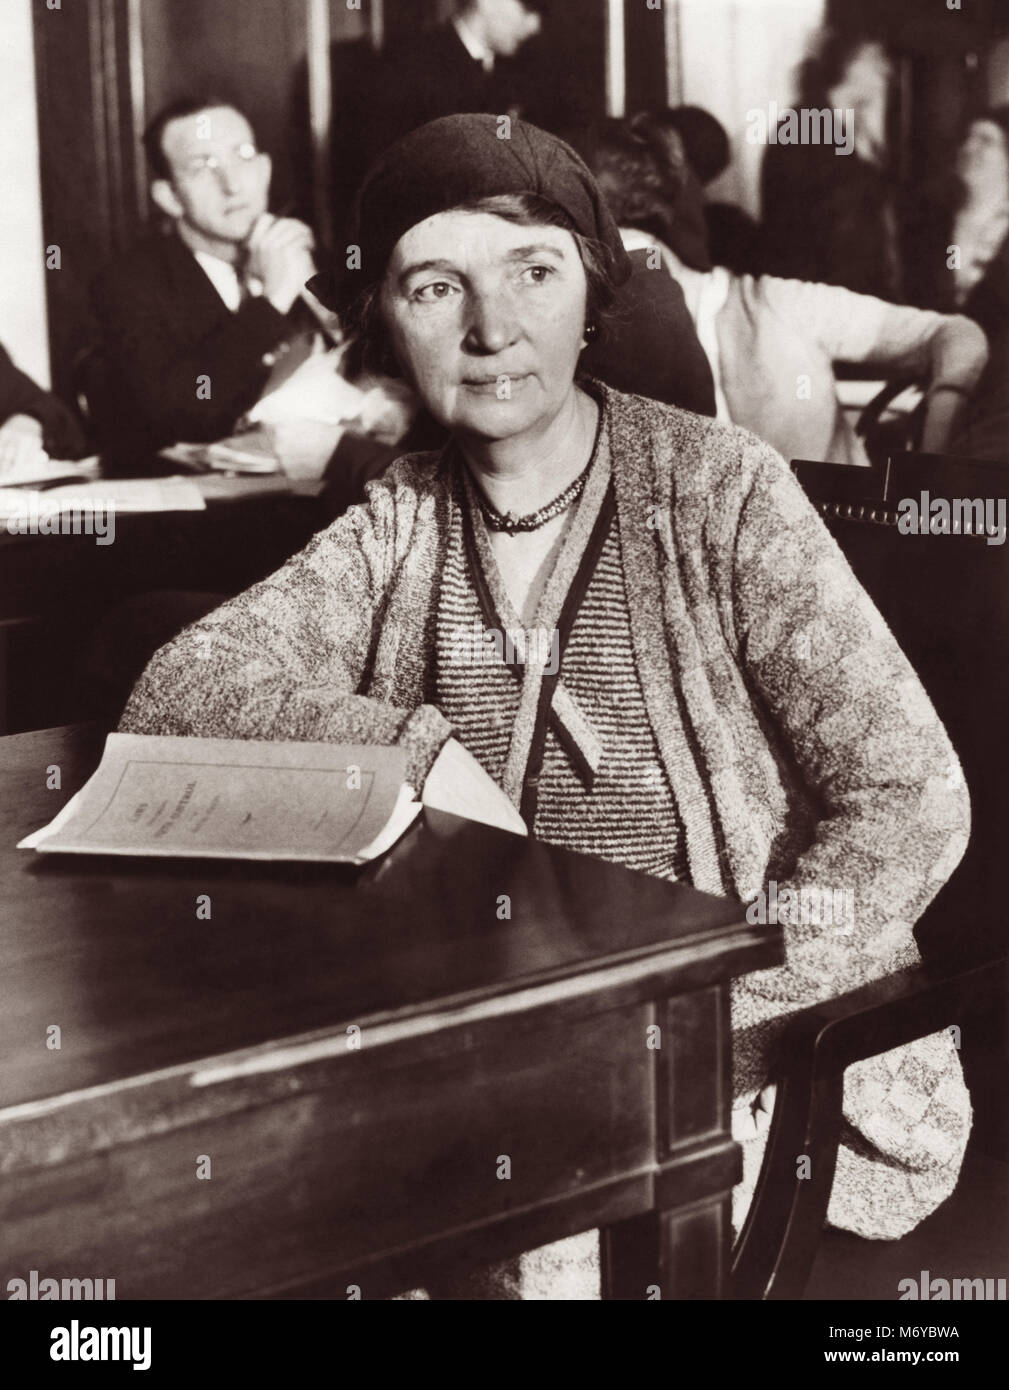 Margaret Sanger (1879-1966), Chairman of the National Committee on Federal Legislation for Birth Control, on the - Stock Image